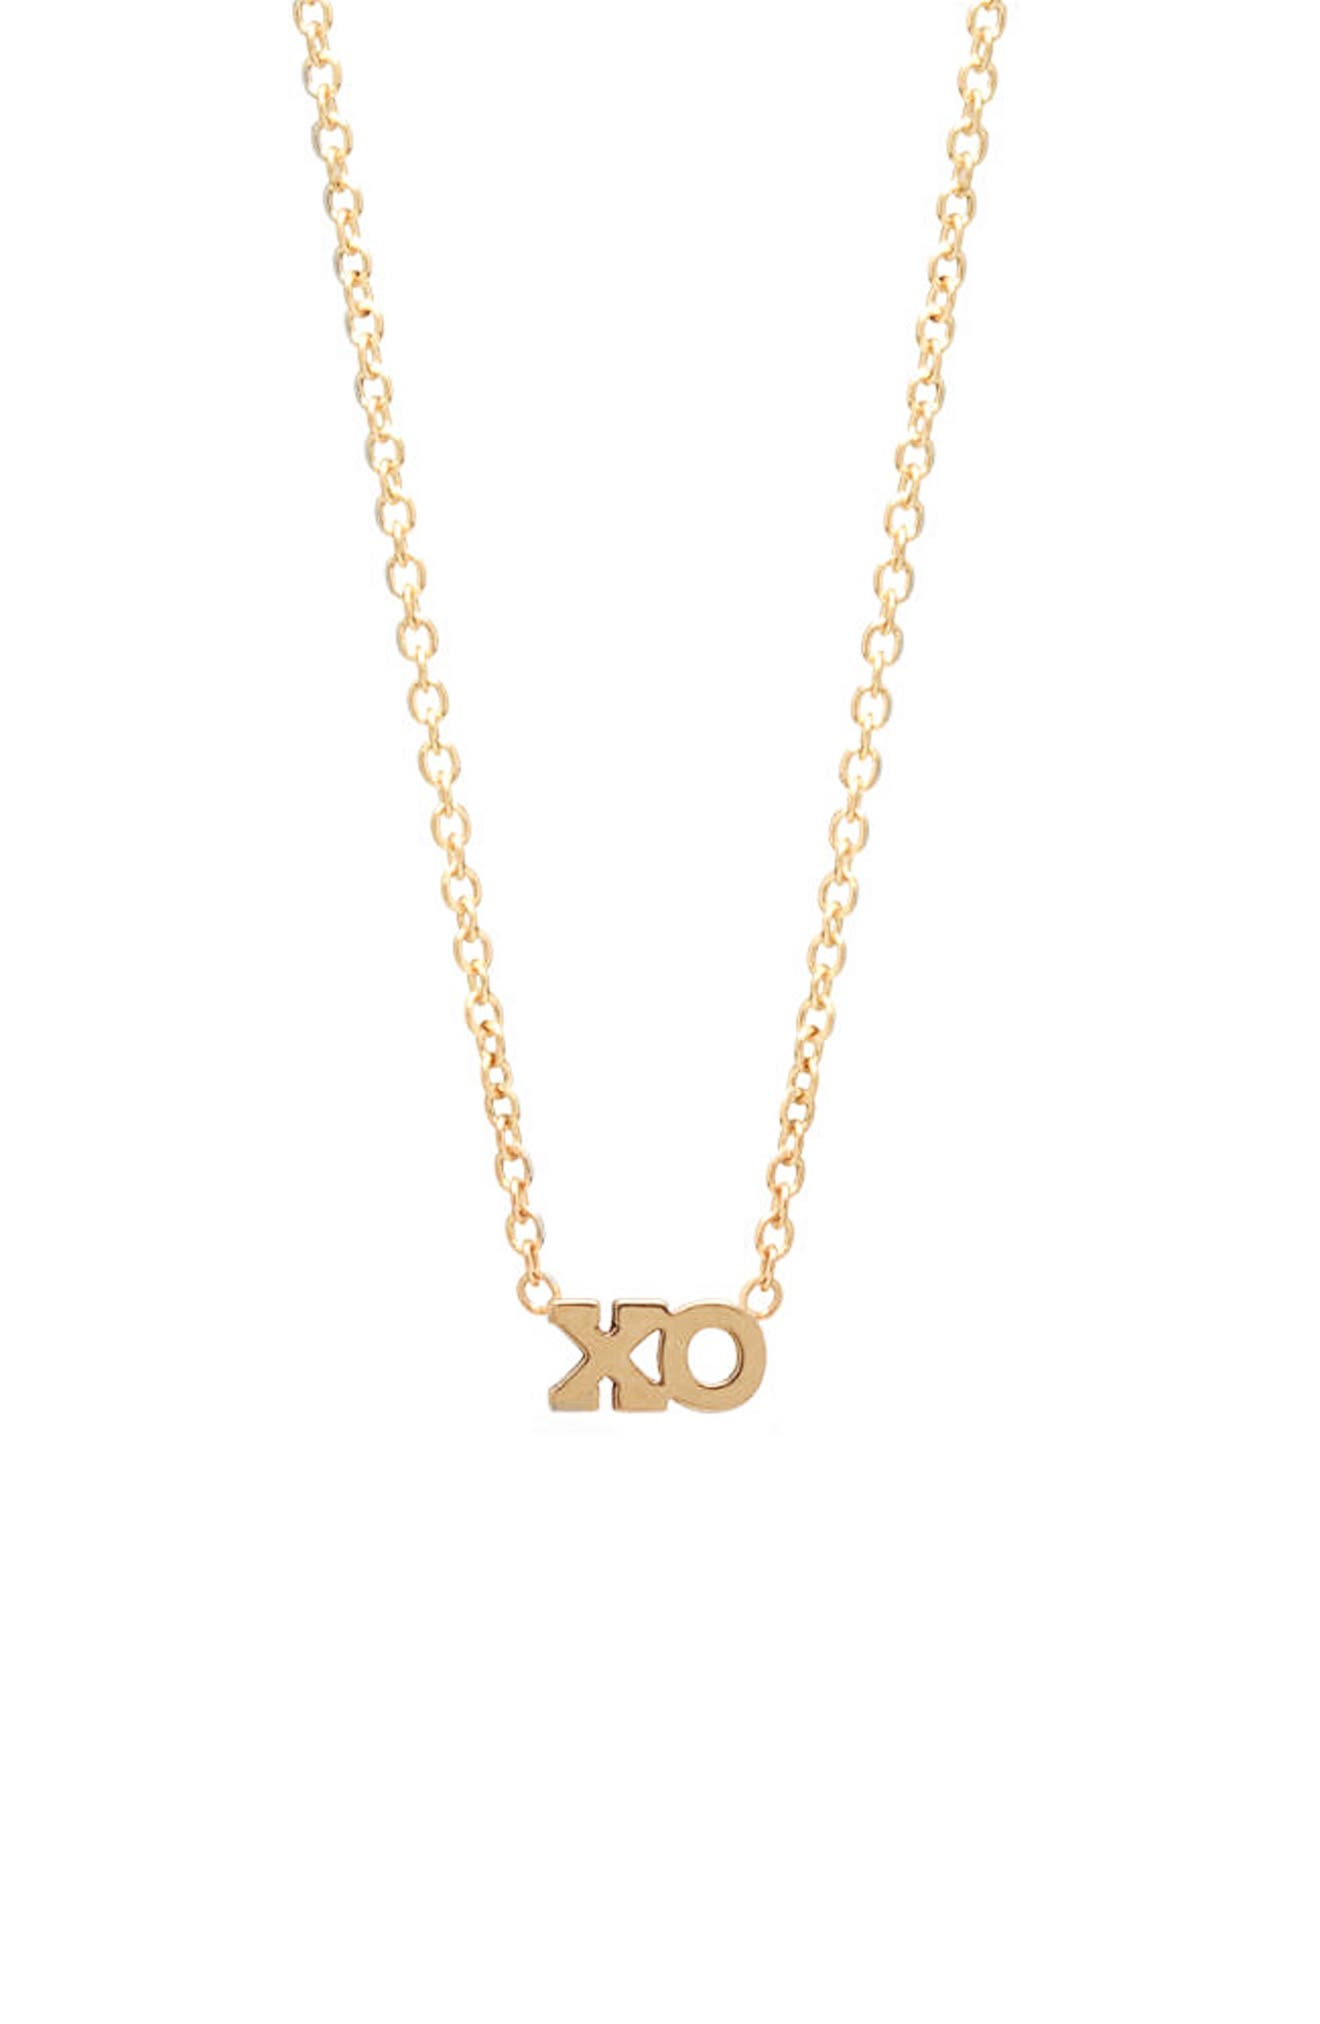 XO Pendant Necklace,                         Main,                         color, YELLOW GOLD